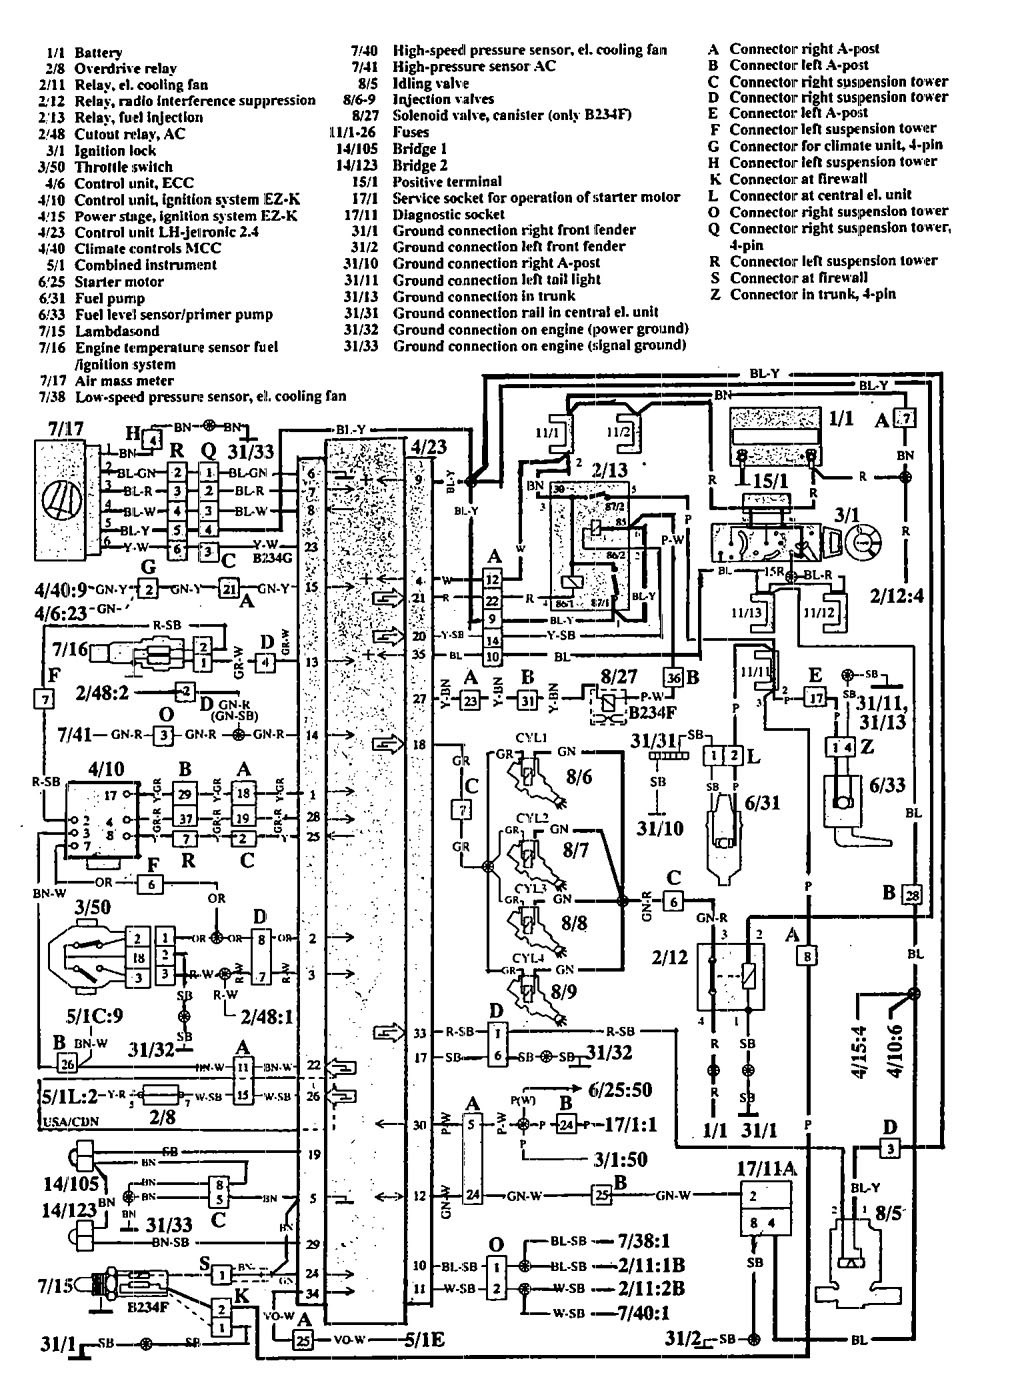 volvo wiring diagram mtd lawn mower parts 940 1992 diagrams fuel controls